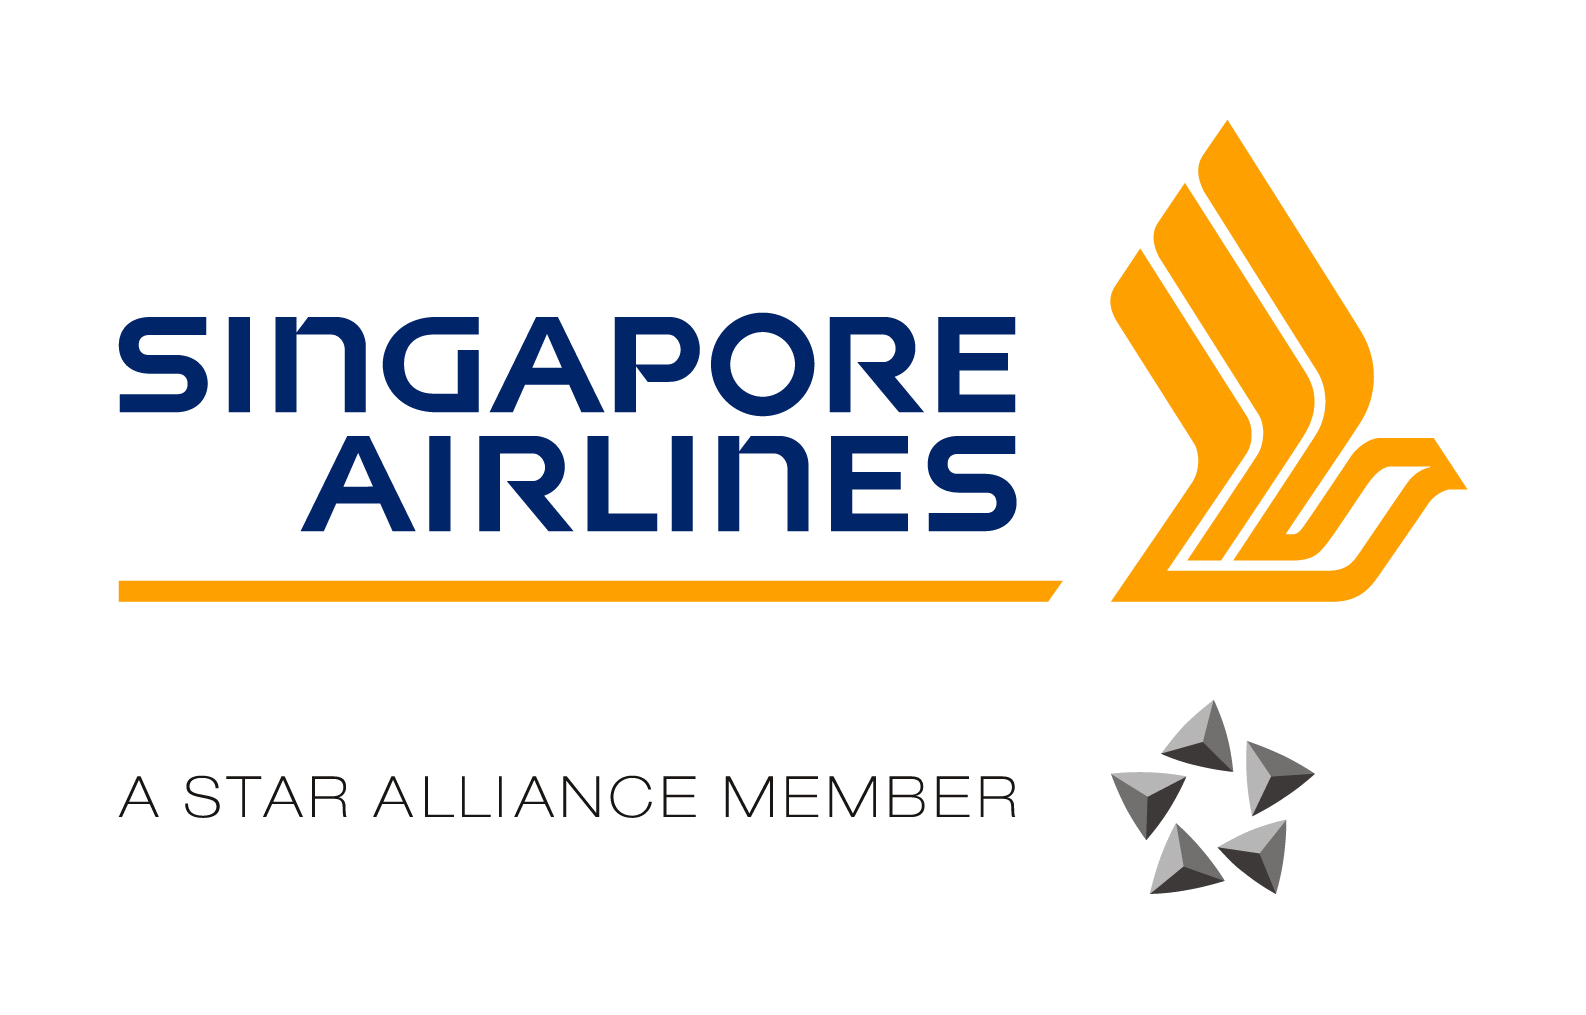 Singapore Airlines Corporate Visual Branding Graphic Identity Logo Airline Logo Singapore Airlines Airlines Branding